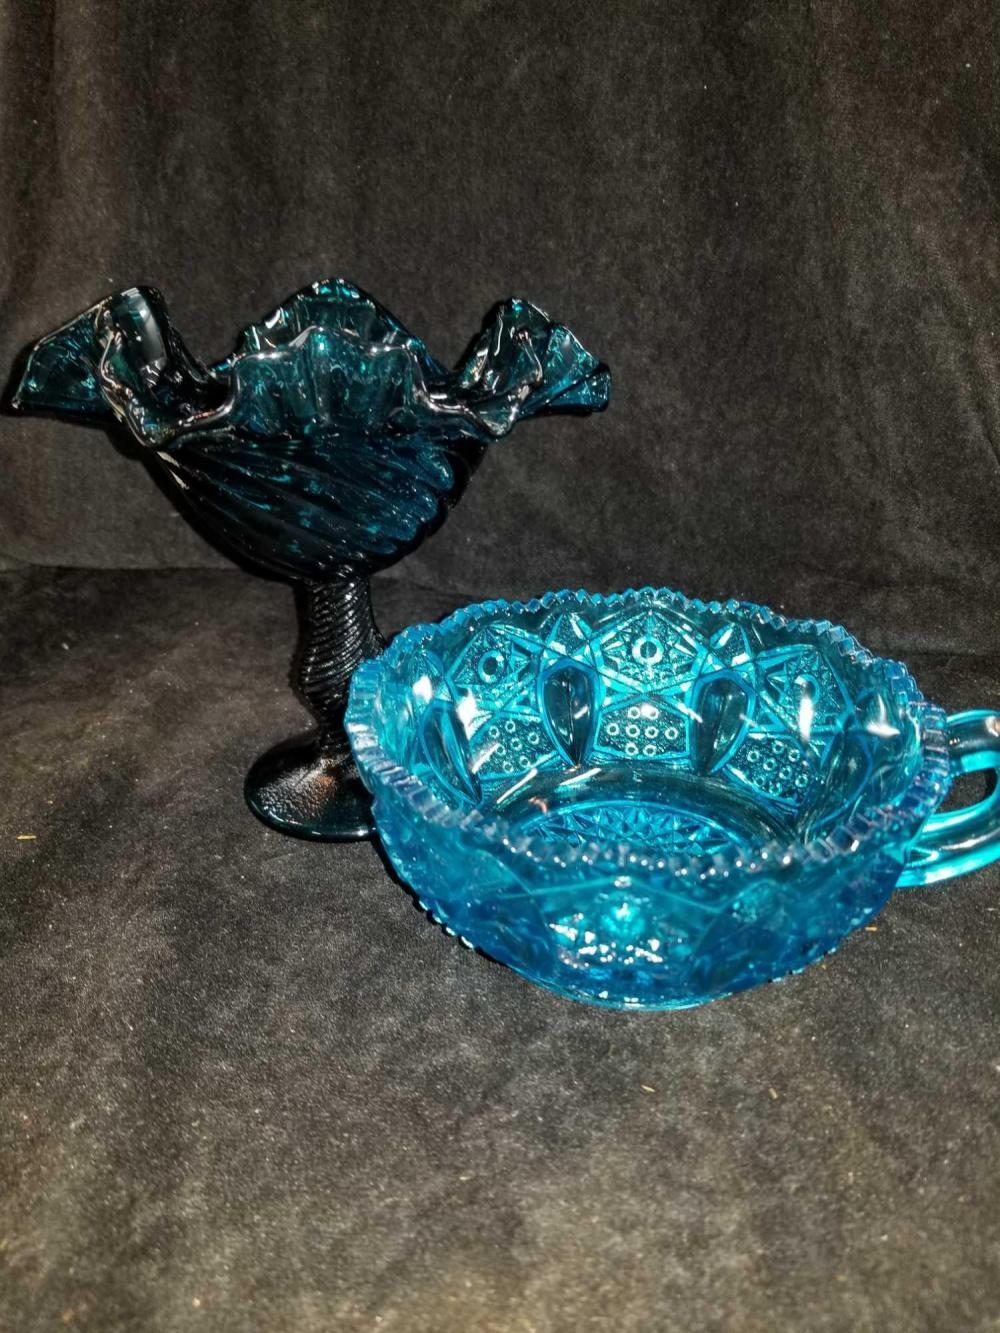 BLUE GLASS COMPOTE & BLUE HANDLED NAPPIE - 2 ITEMS